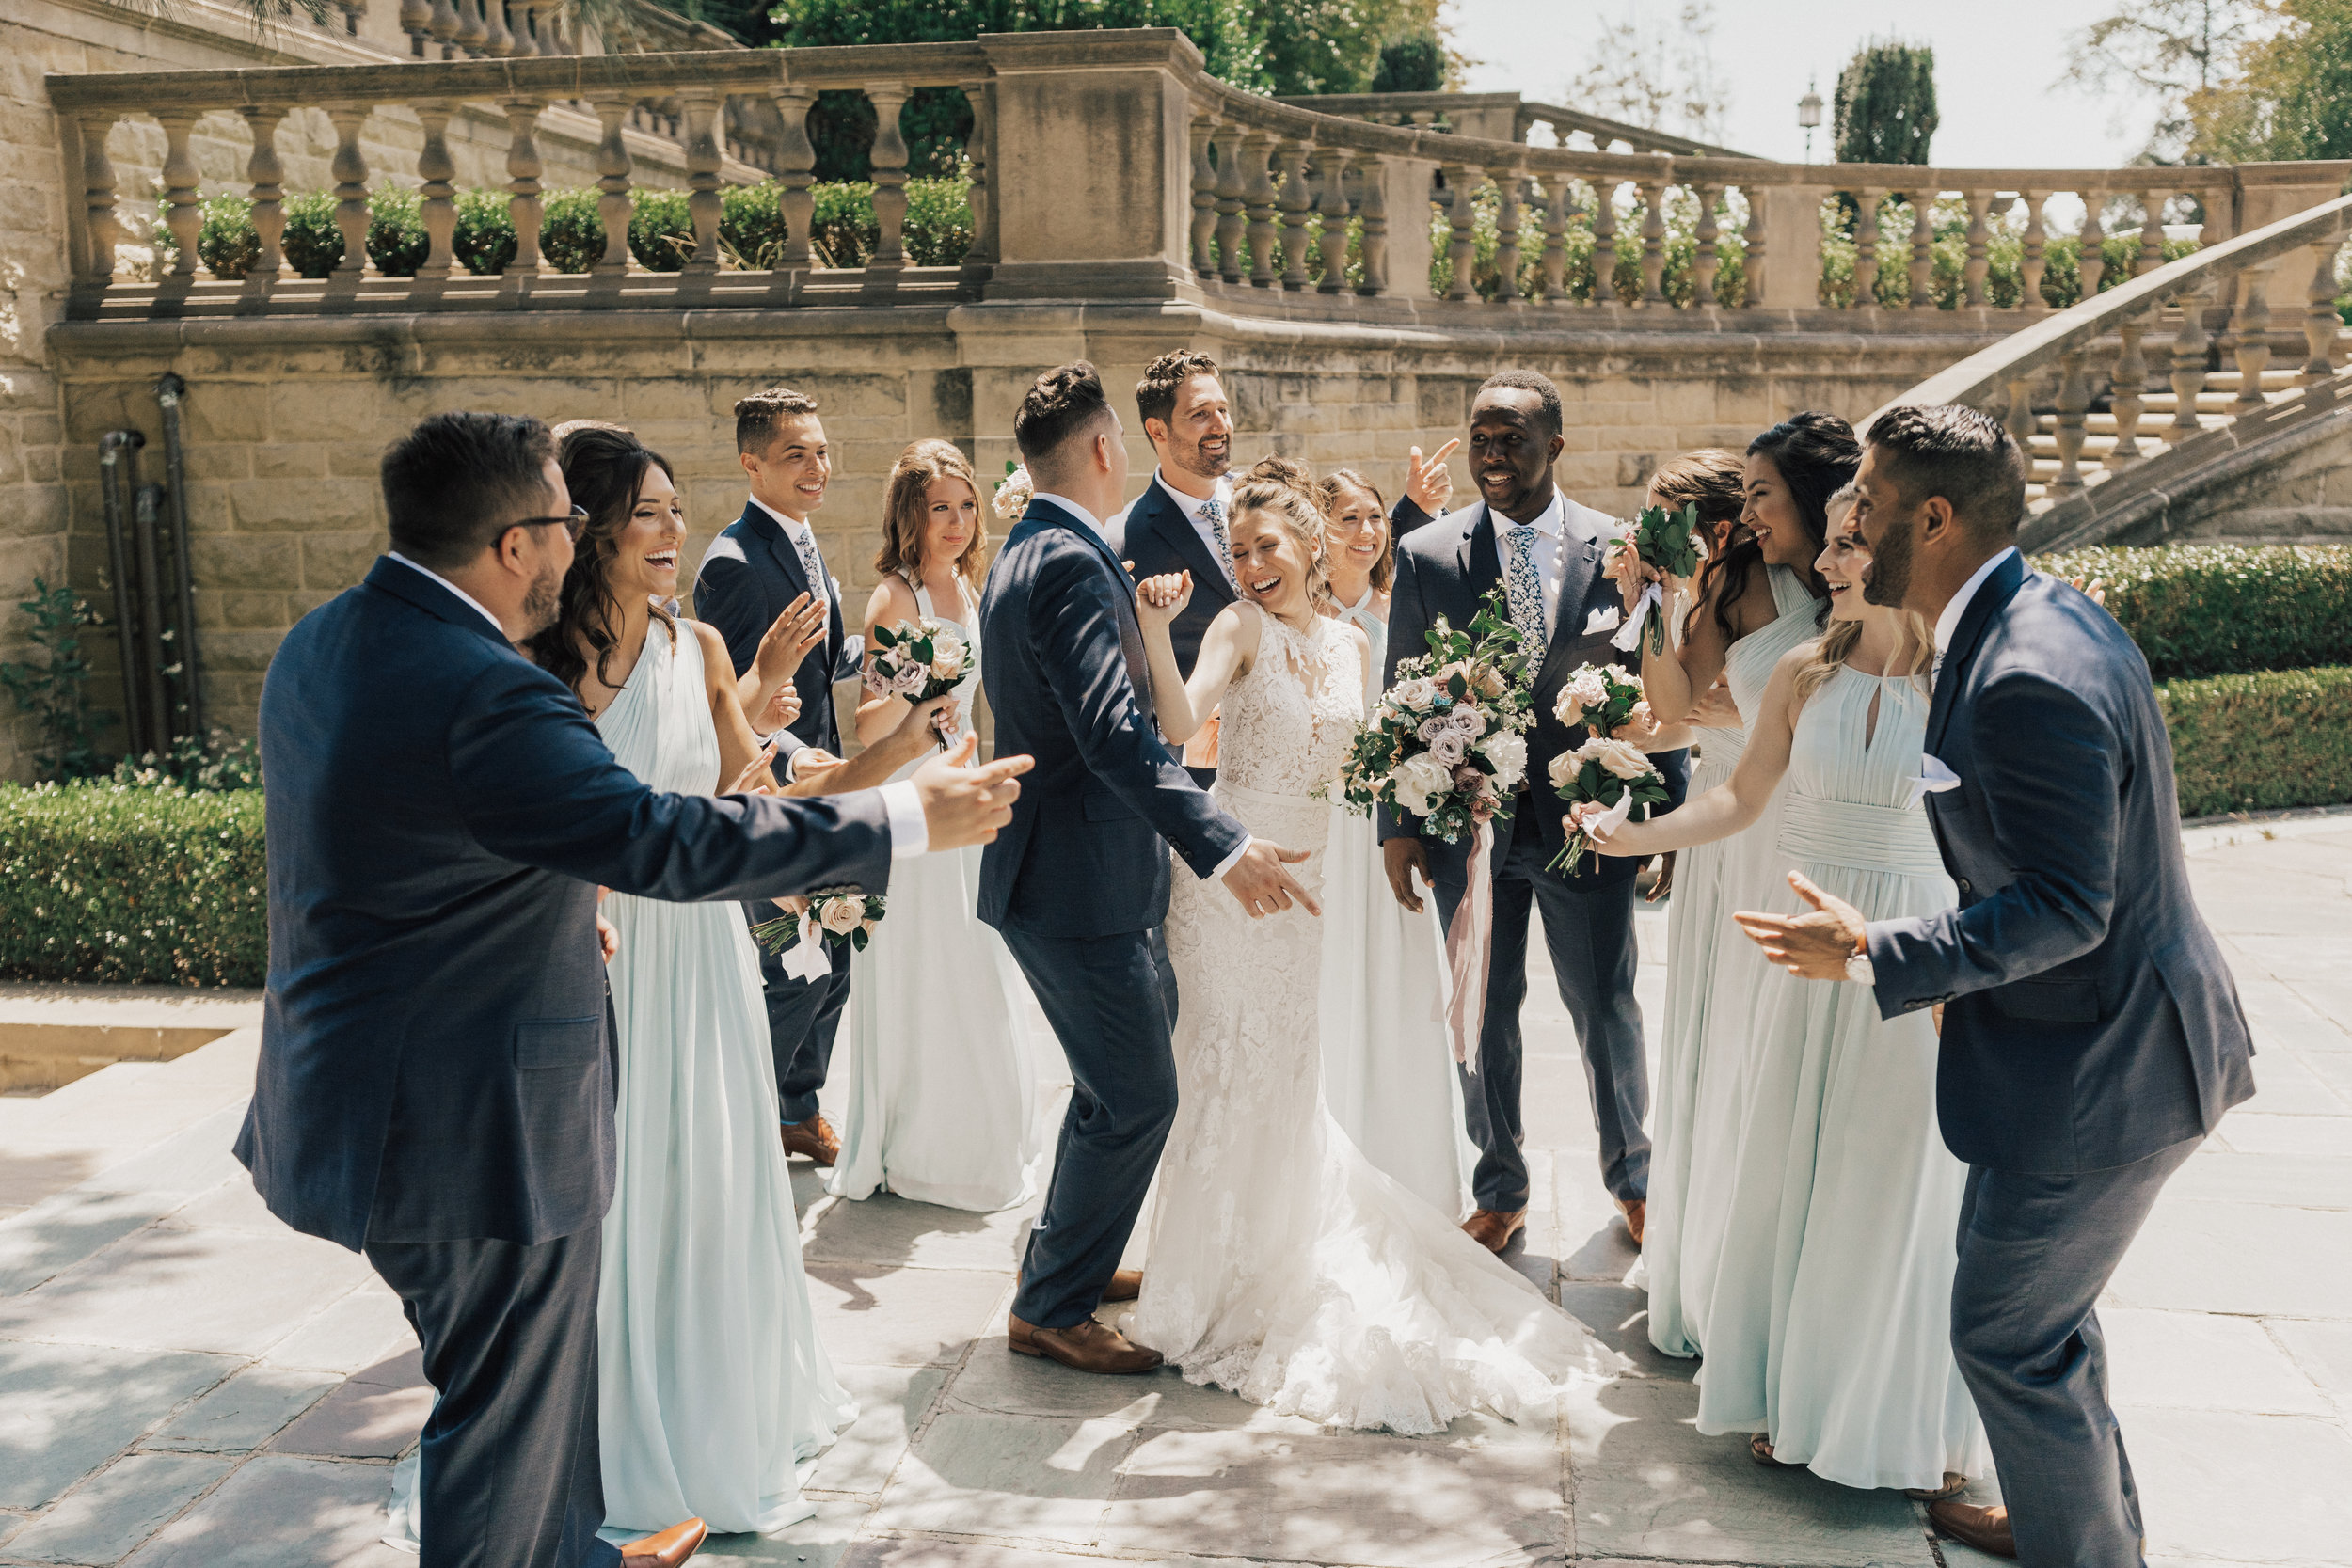 Greystone Mansion, Greystone Mansion Beverly Hills, Beverly Hills Wedding, California Estate Wedding, wedding party photo ideas, candid wedding party photo, navy groomsmen suit, light blue bridesmaid dress